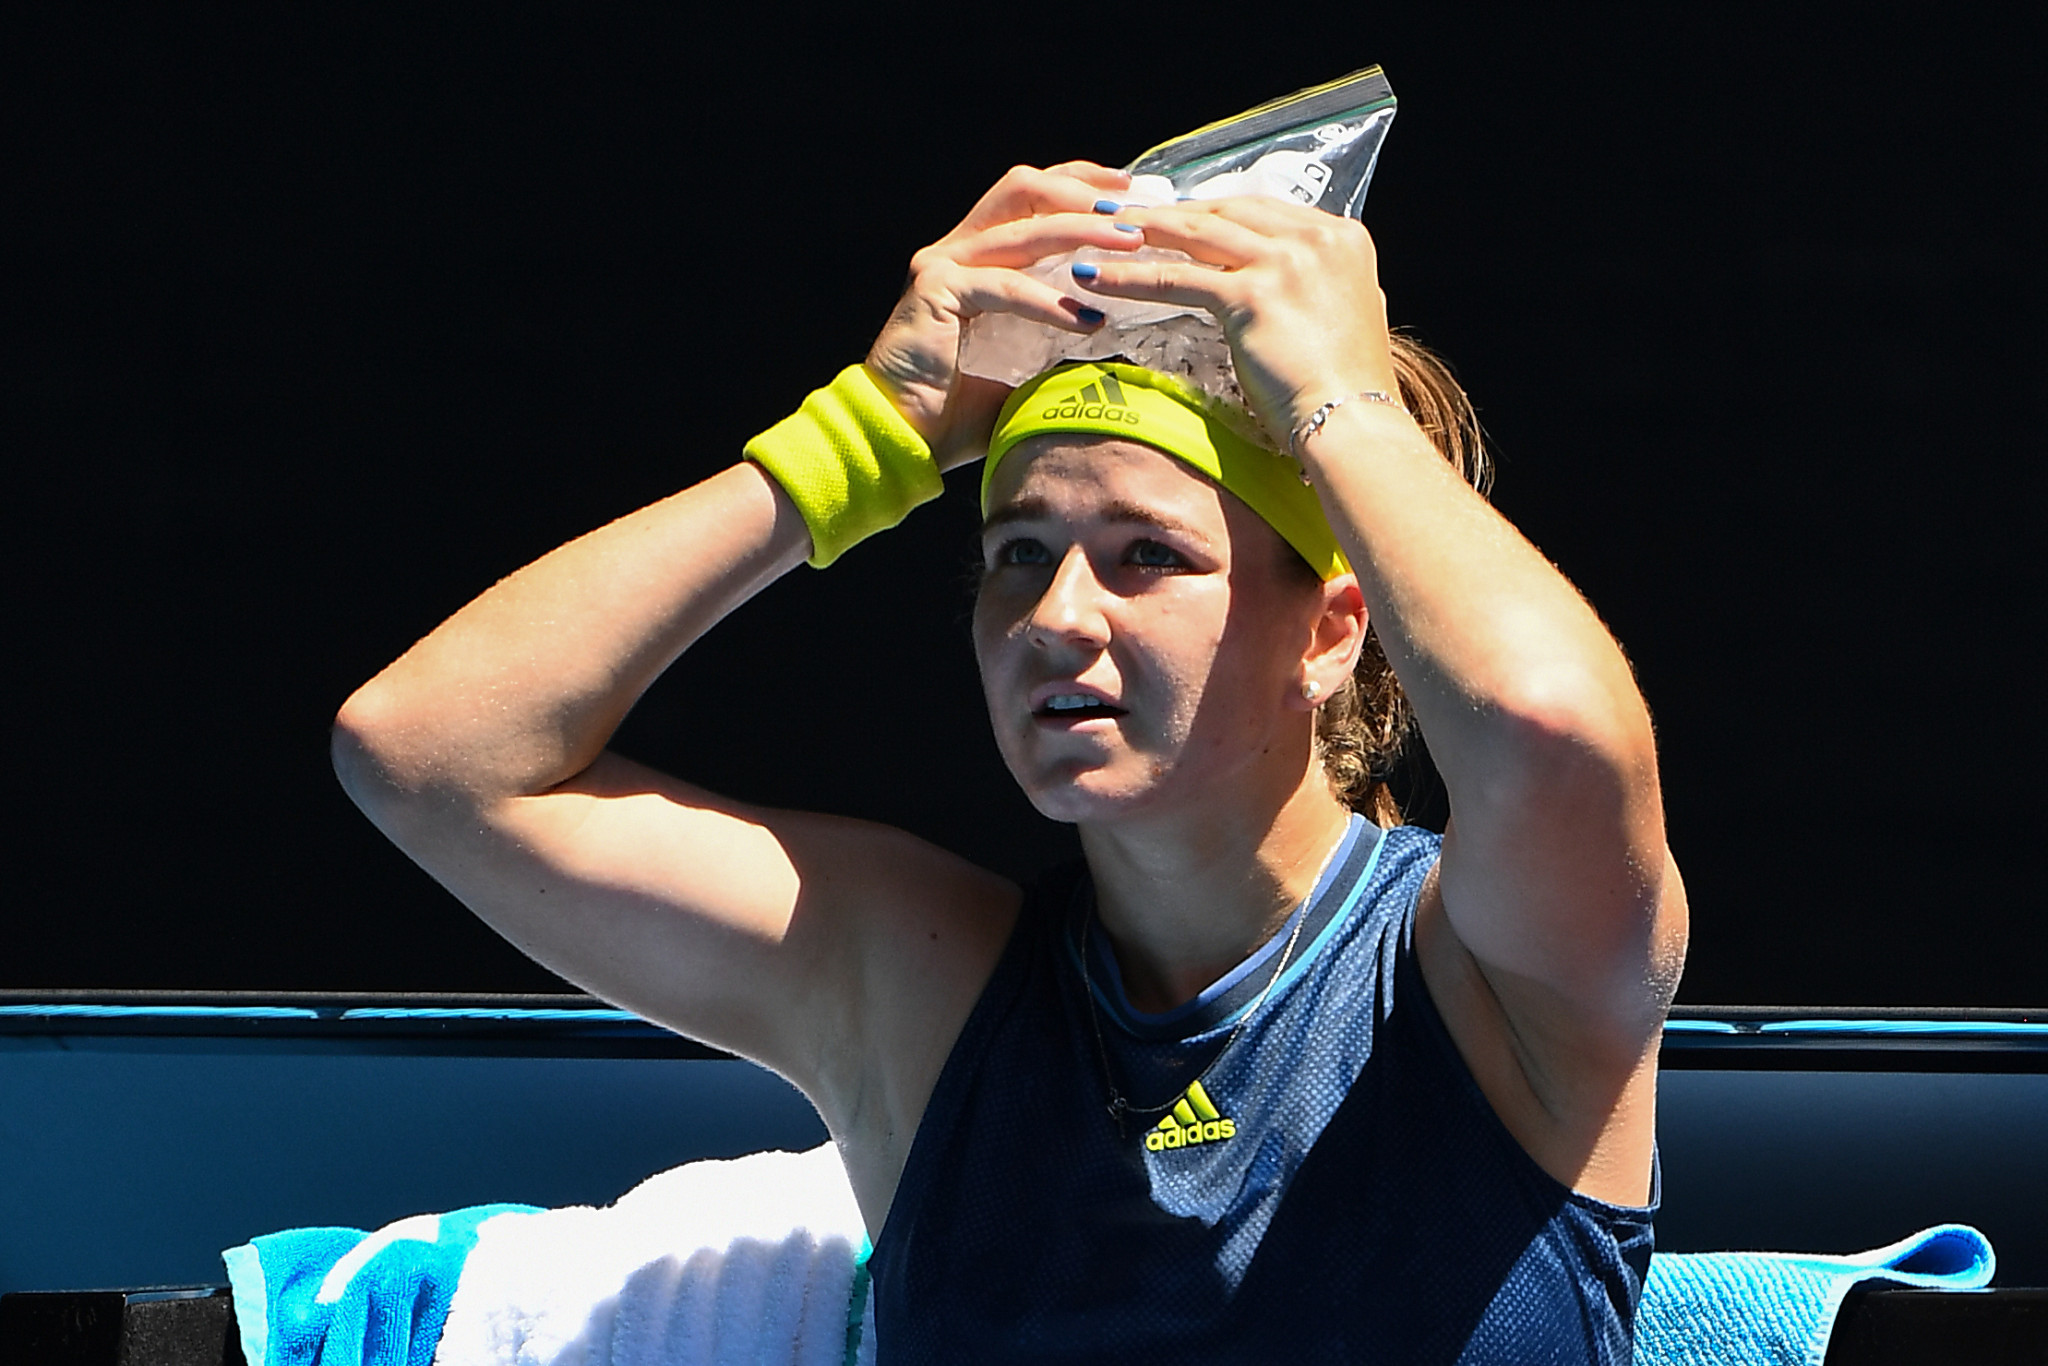 Czech Republic's Karolina Muchova suffered from dizziness against Ashleigh Barty ©Getty Images